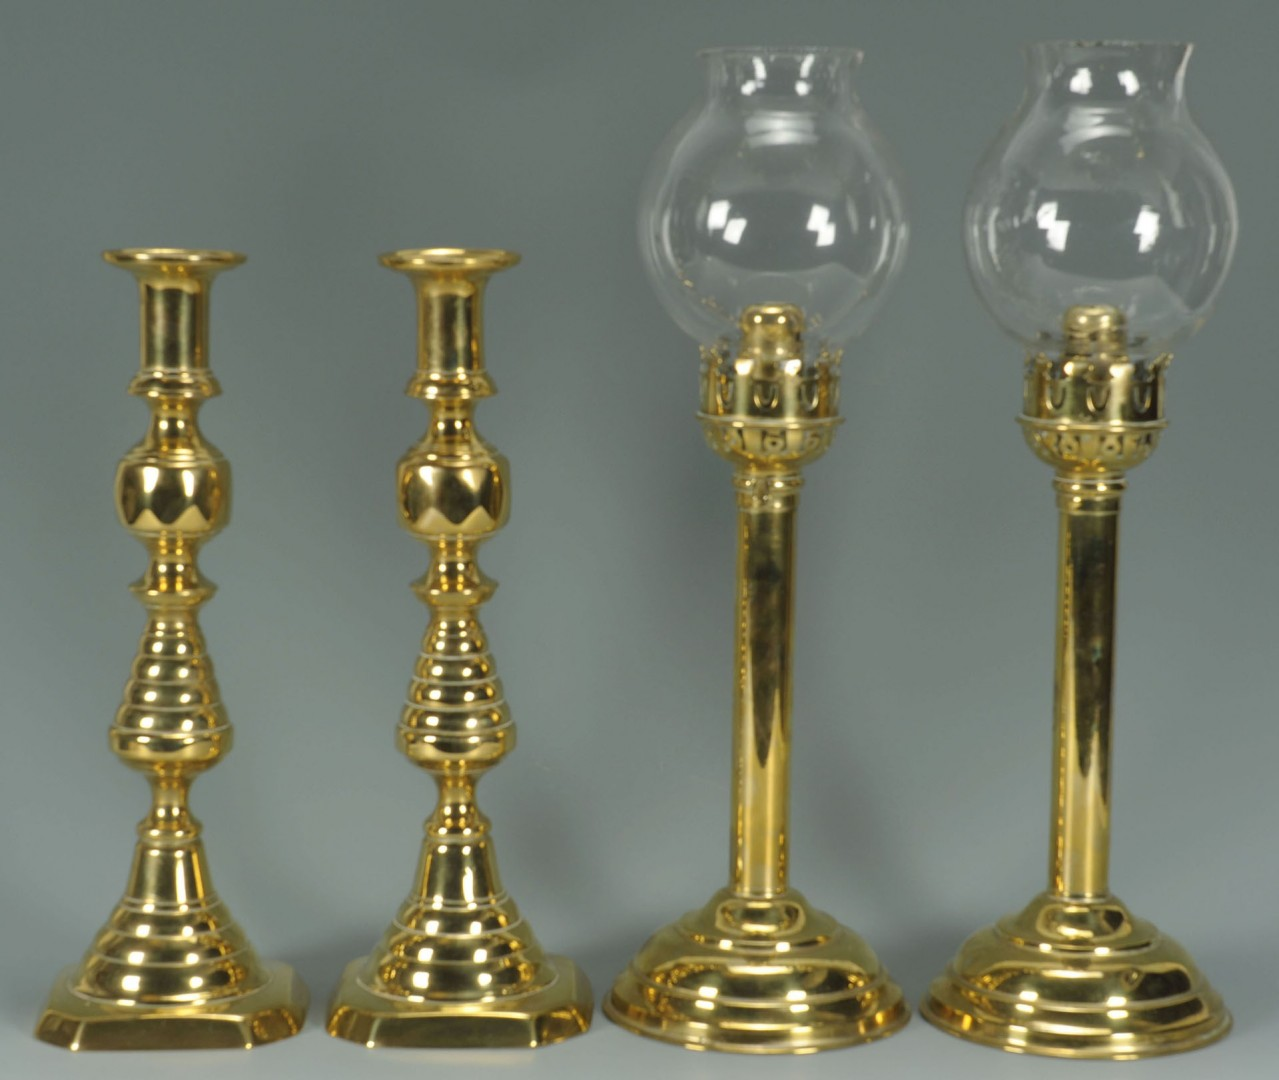 4 Pairs Brass Candlesticks, 1 with shades, 8 total